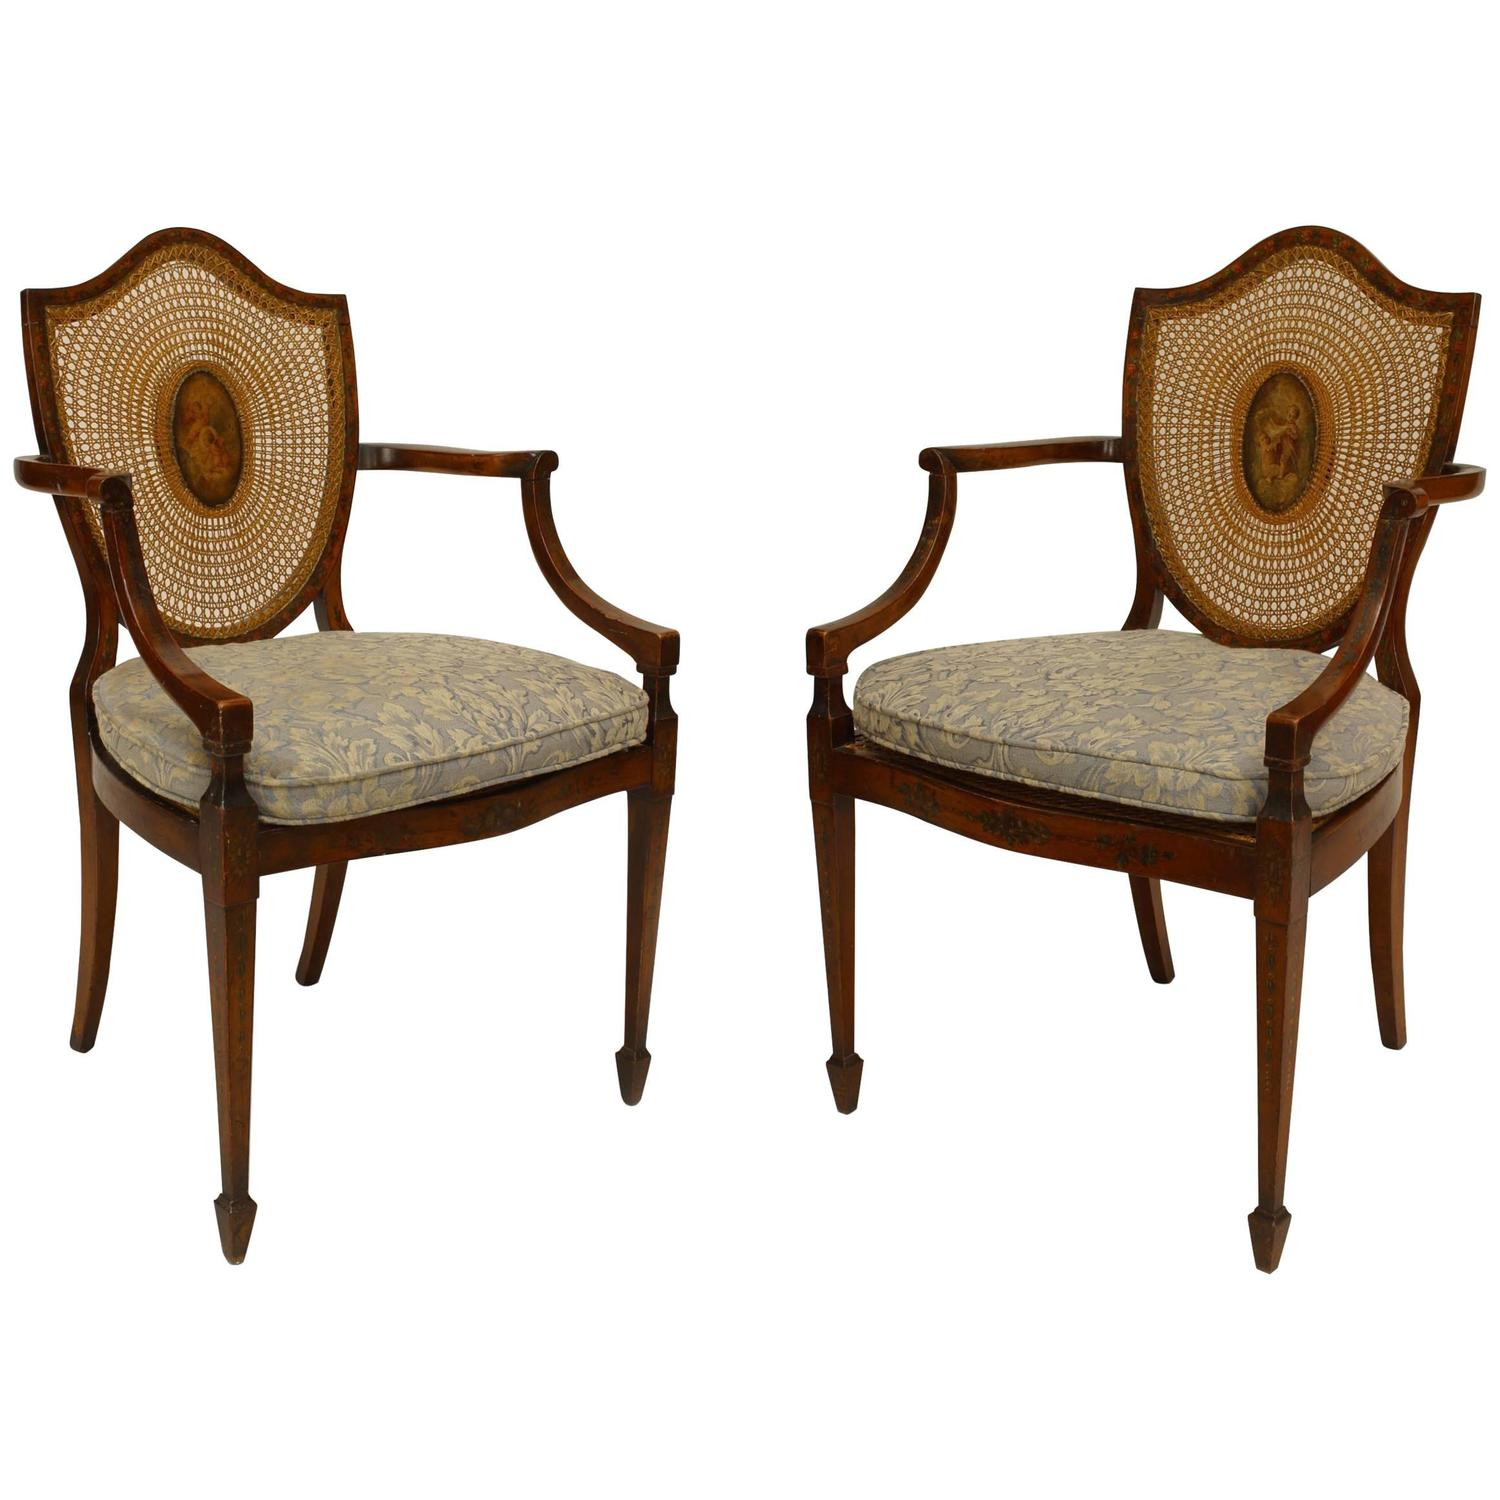 Pair Of English Sheraton Style Satinwood And Cane Shield Back Armchairs For Sale At 1stdibs